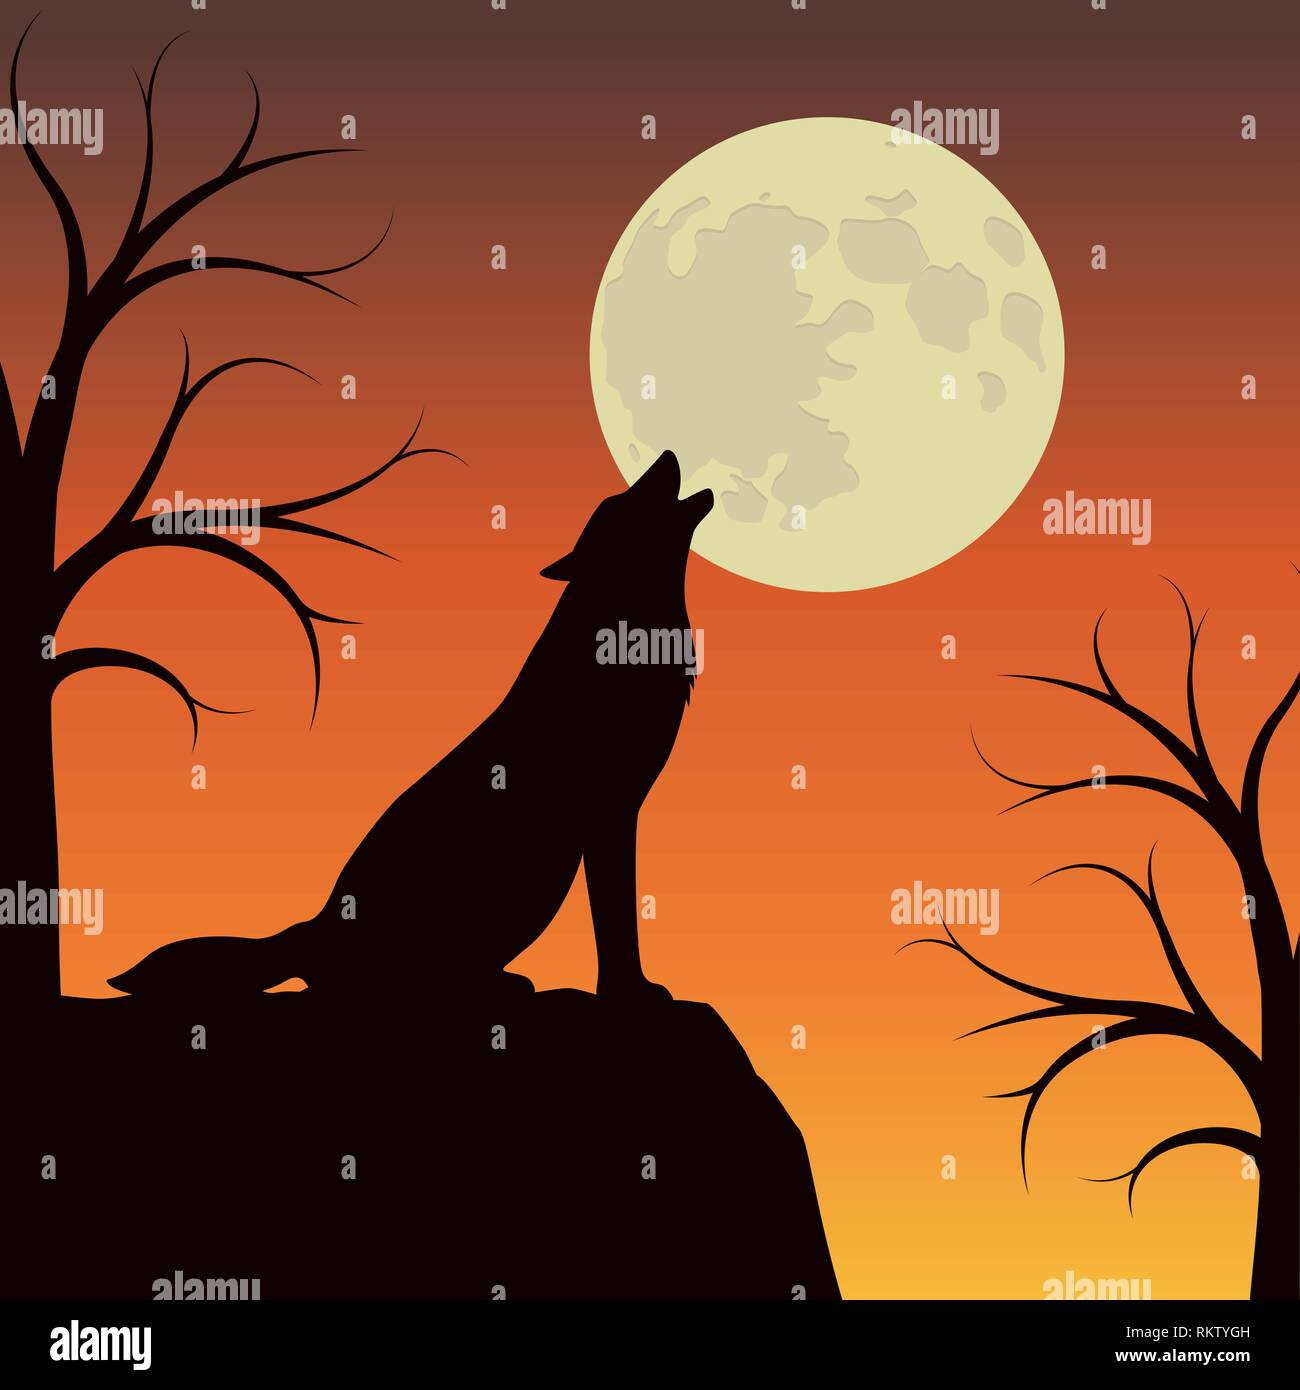 wolf howls at the full moon orange and brown landscape vector illustration EPS10 - Stock Image